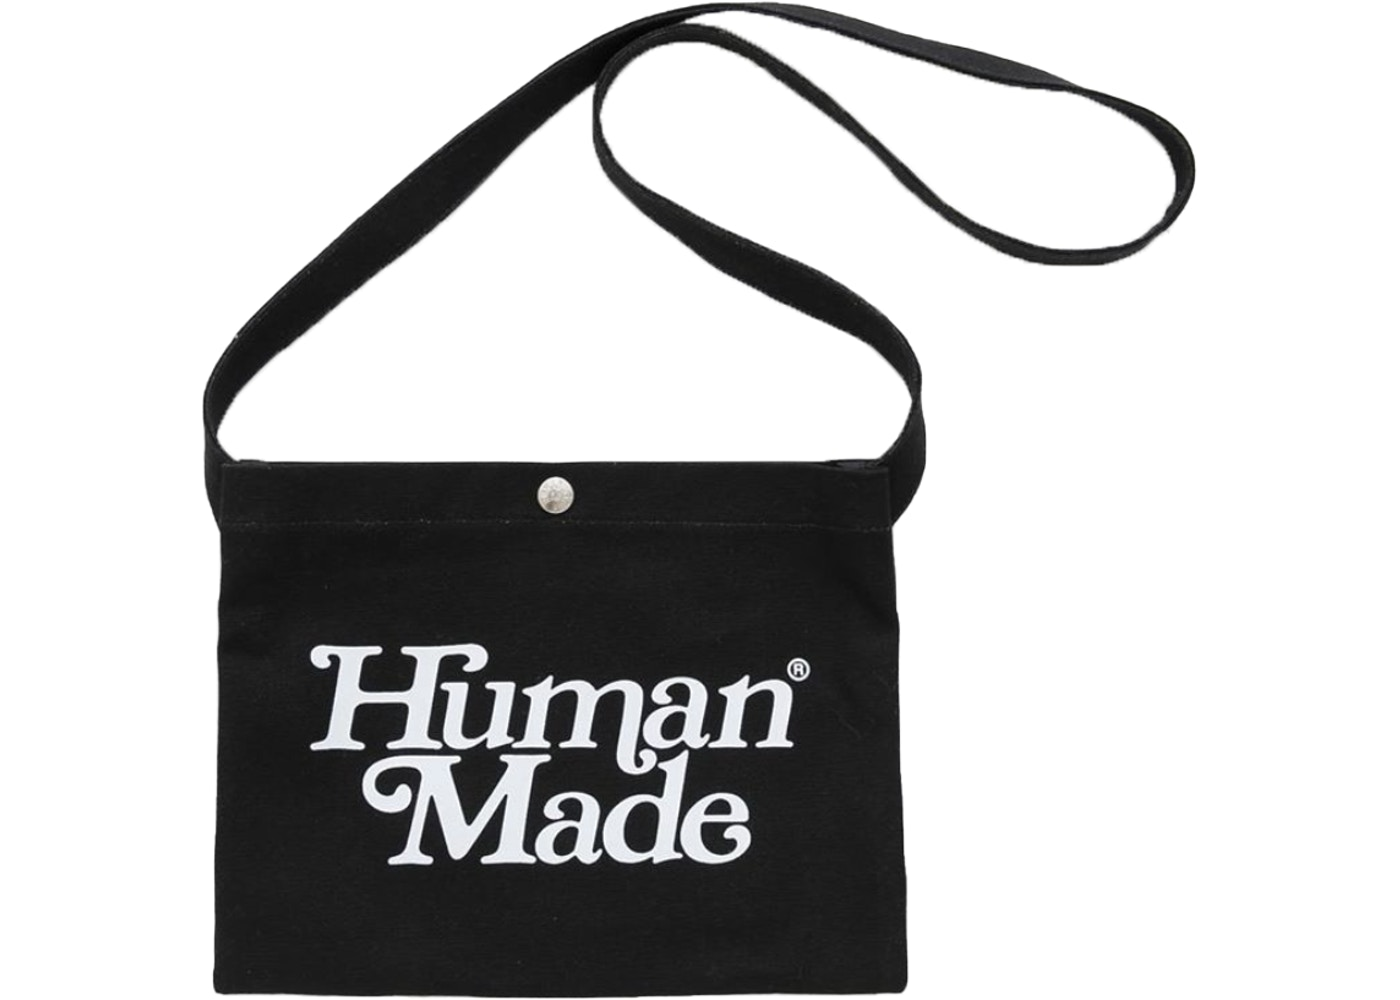 80ee8d50 Other Brands Human Made - Buy & Sell Streetwear